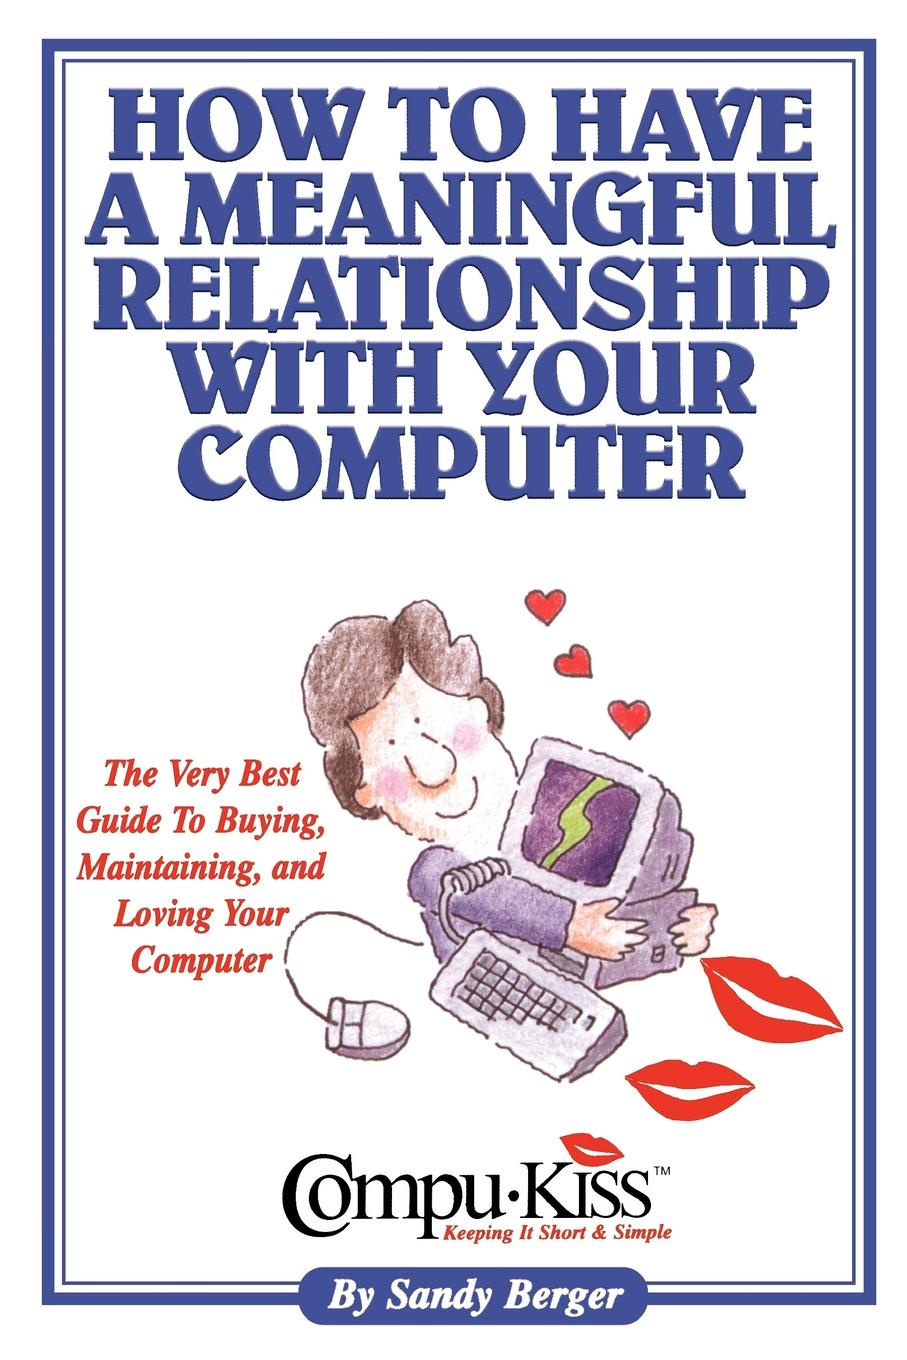 Sandy Berger. How to Have a Meaningful Relationship with Your Computer